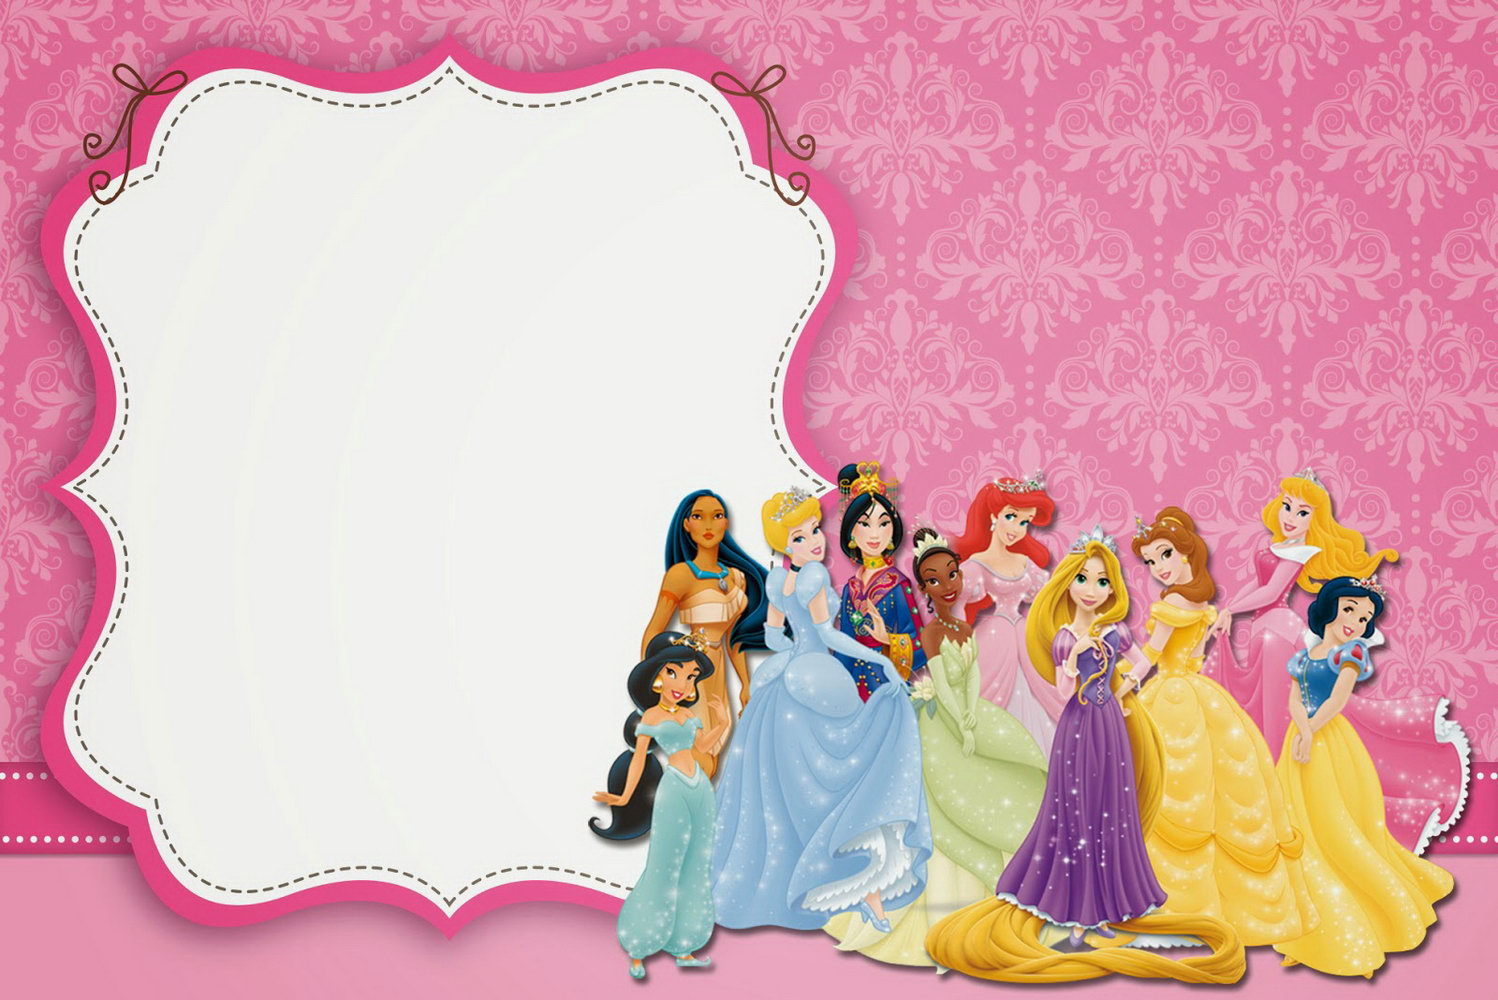 Blank Princess Invitation Template